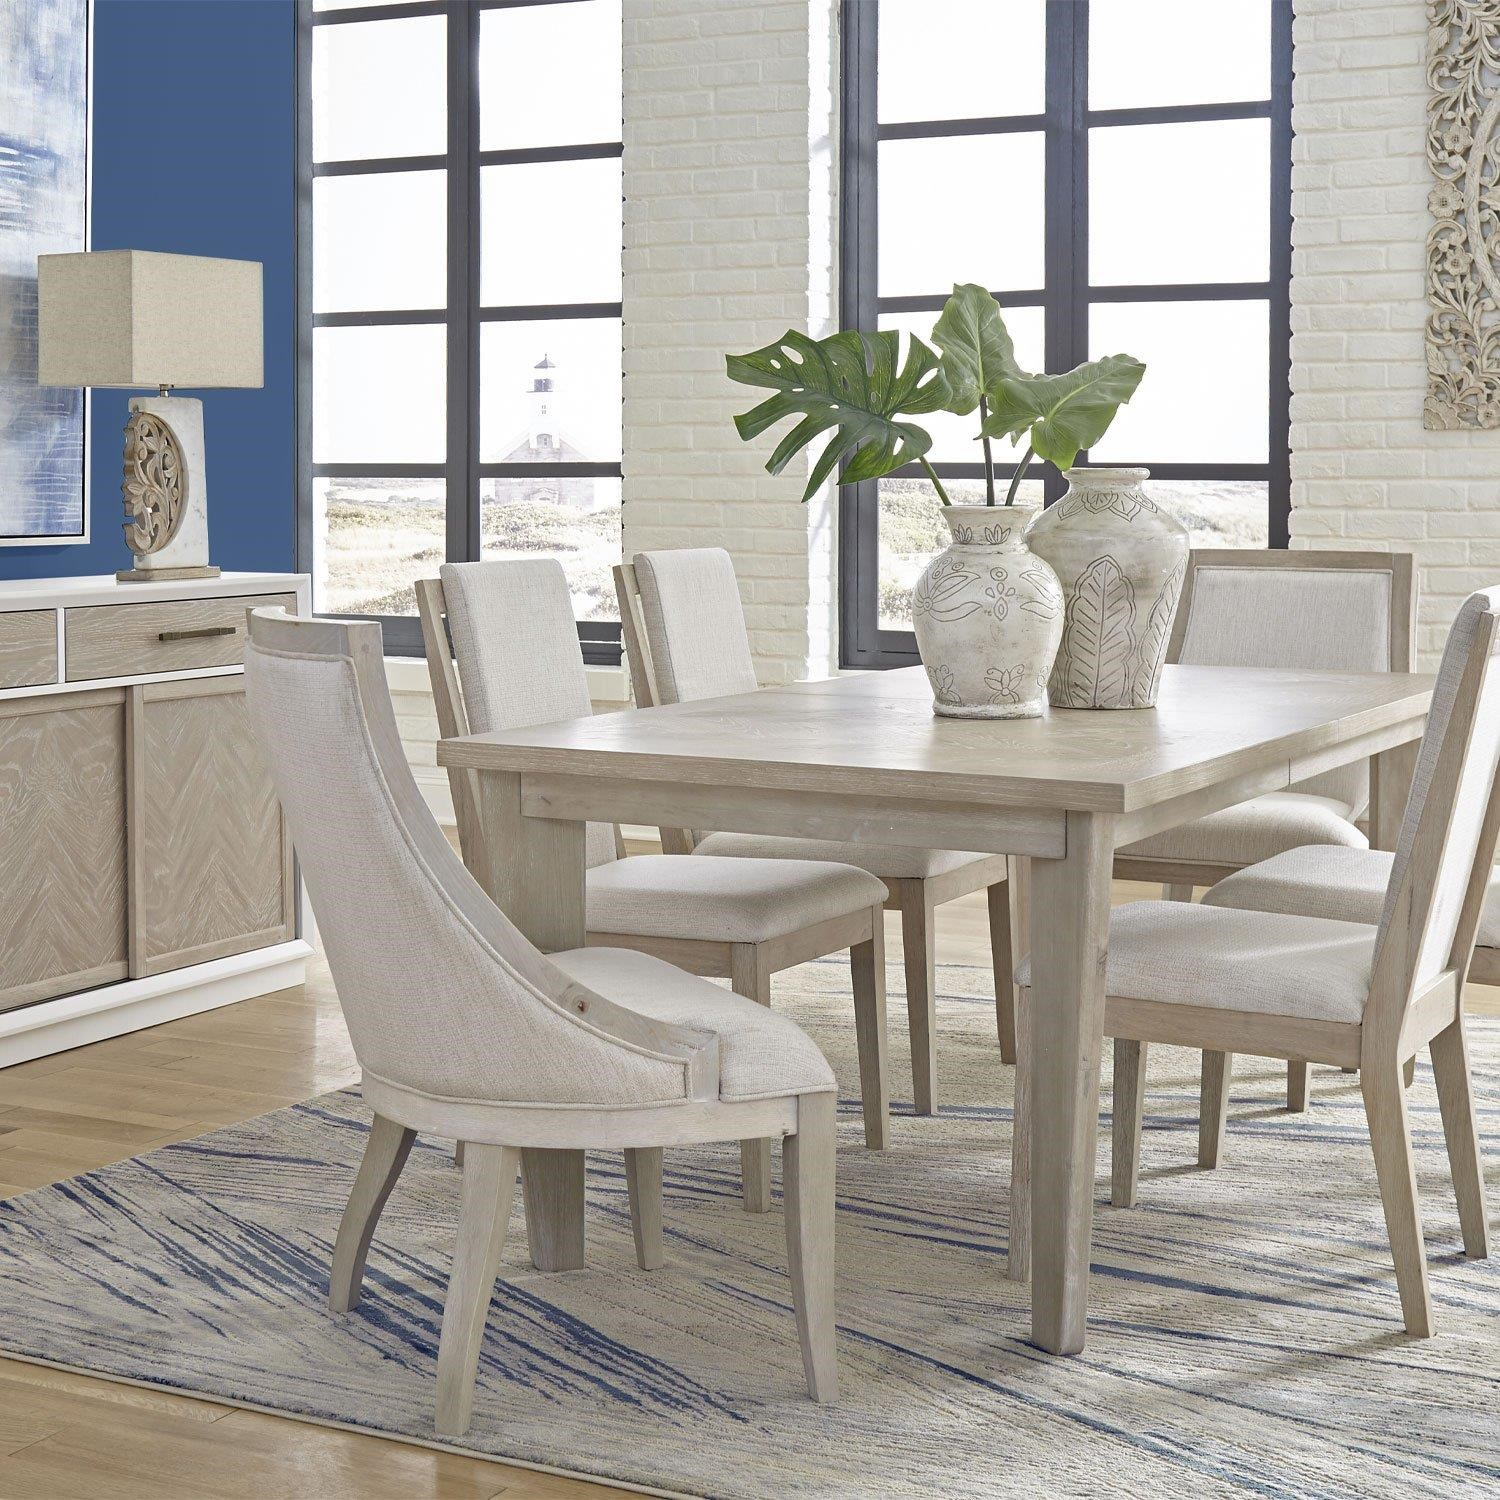 Boca Grande Dining Table, Floating Chair, Sling Chair by Panama Jack by Palmetto Home at Johnny Janosik